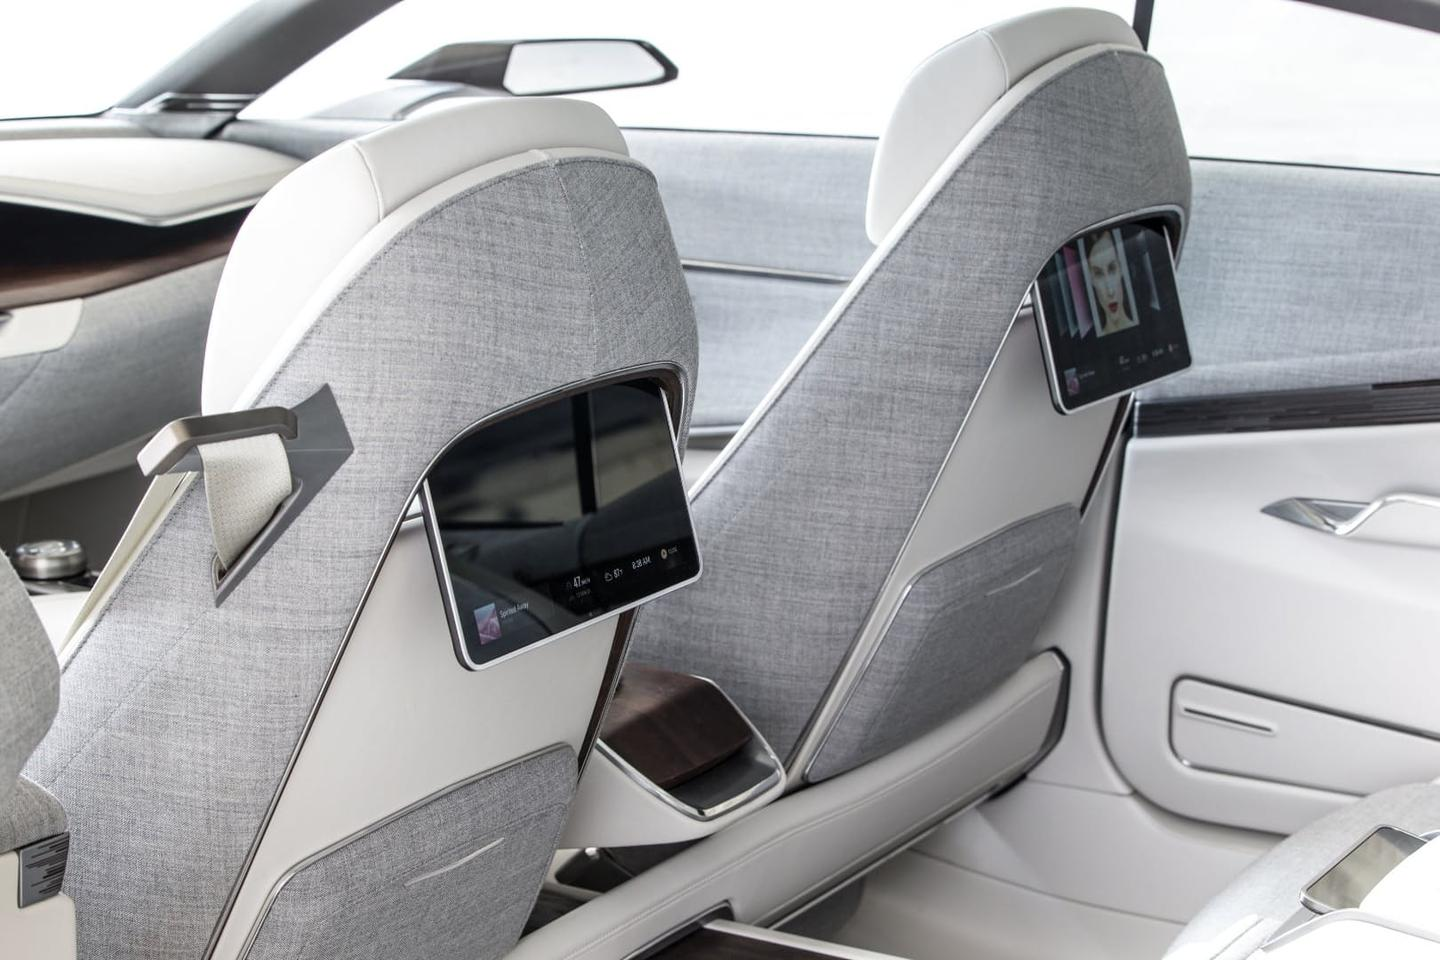 The cabin of the Cadillac Escala rather than more conventional materials